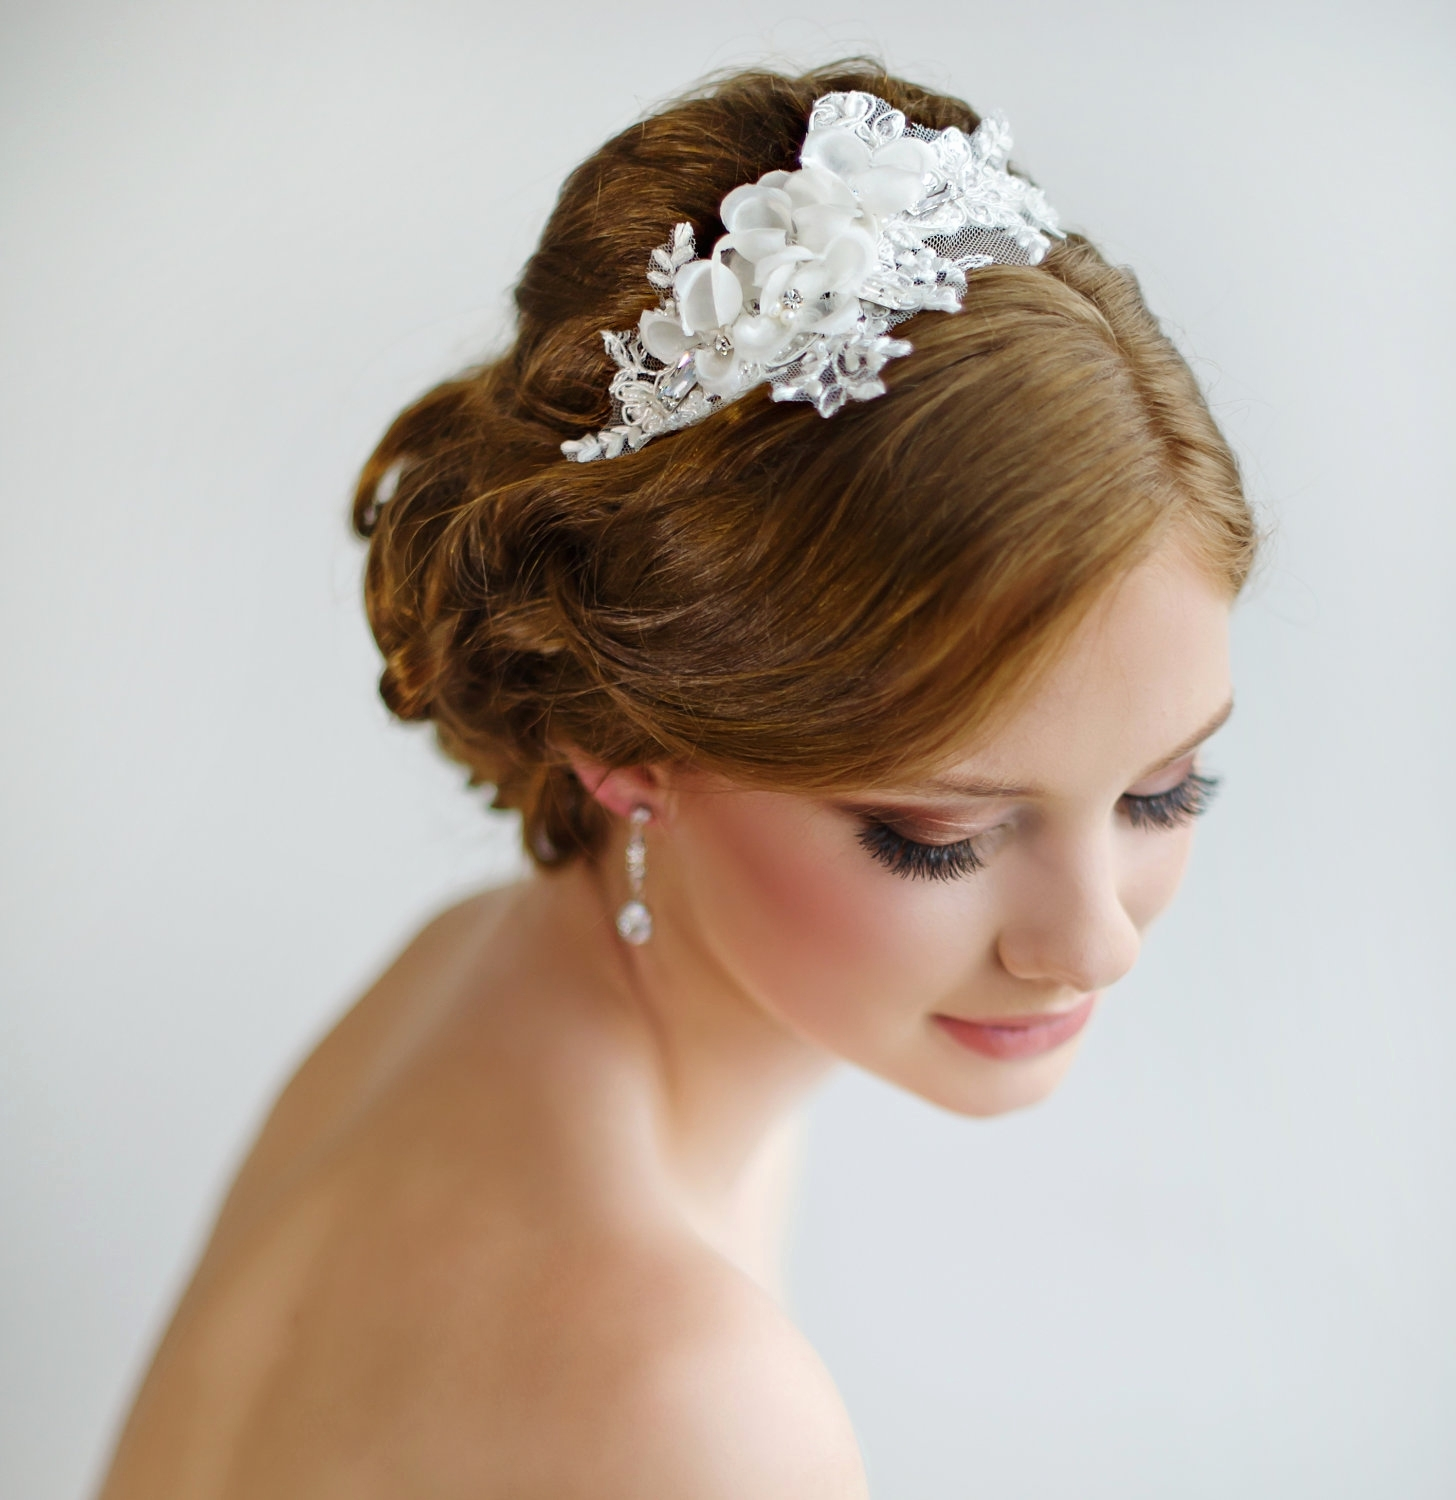 Current Wedding Hairstyles For Older Brides With Unique Wedding Hairstyles For Older Brides – Hair Inspiration (View 3 of 15)